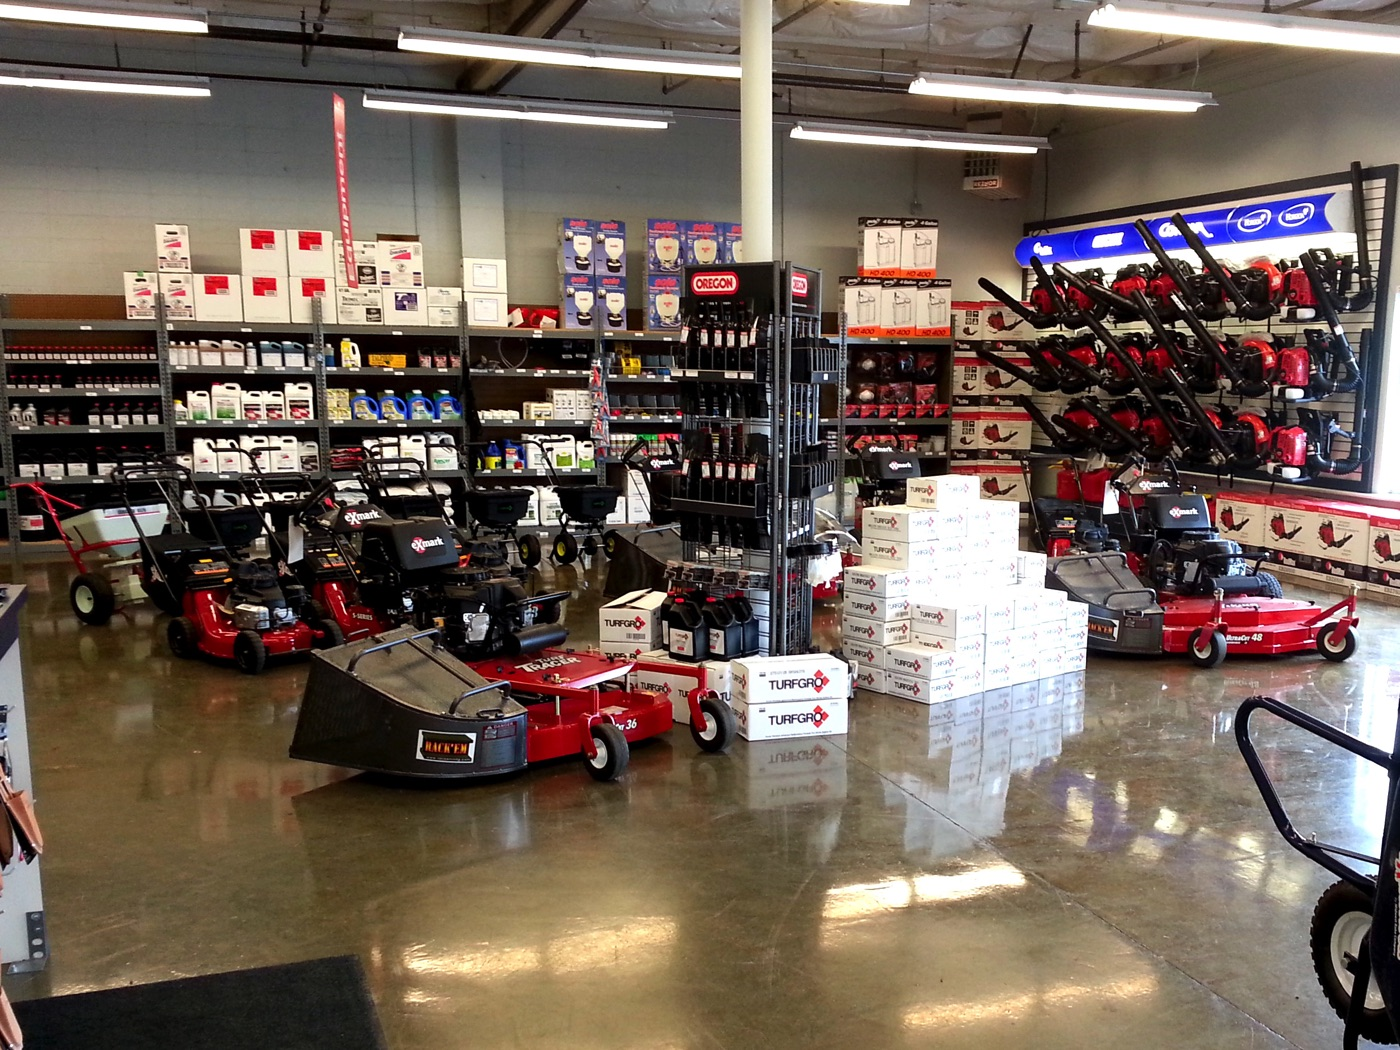 Horizon Everett opened its doors in early 2013 and has quickly become the  go-to destination for wholesale landscape and irrigation supplies in  Everett, WA. - Everett Horizon Distributors - Irrigation & Landscape Supply